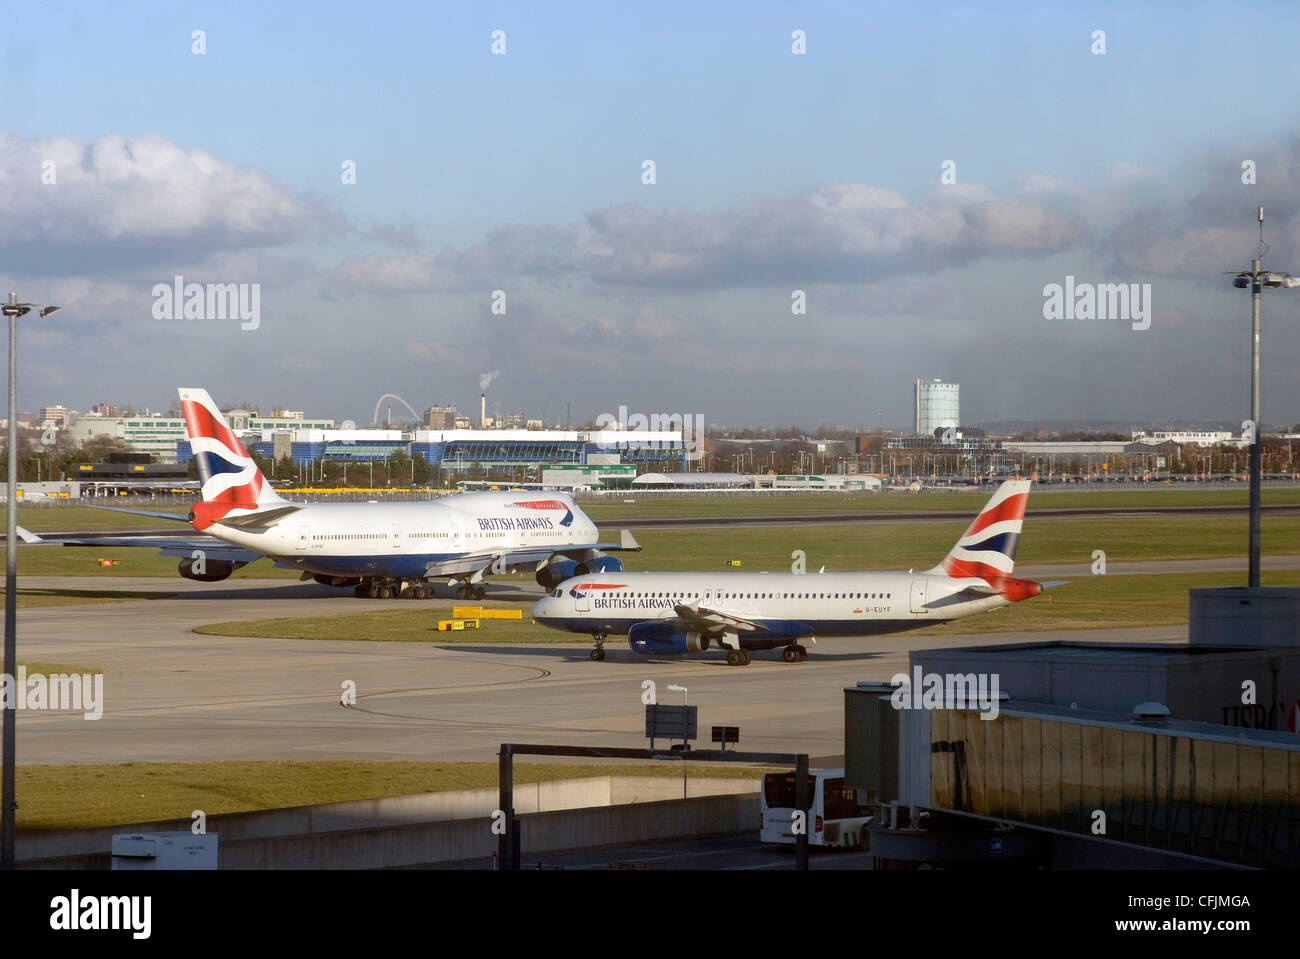 View from Terminal 5, Heathrow Airport, London, United Kingdom, Europe - Stock Image